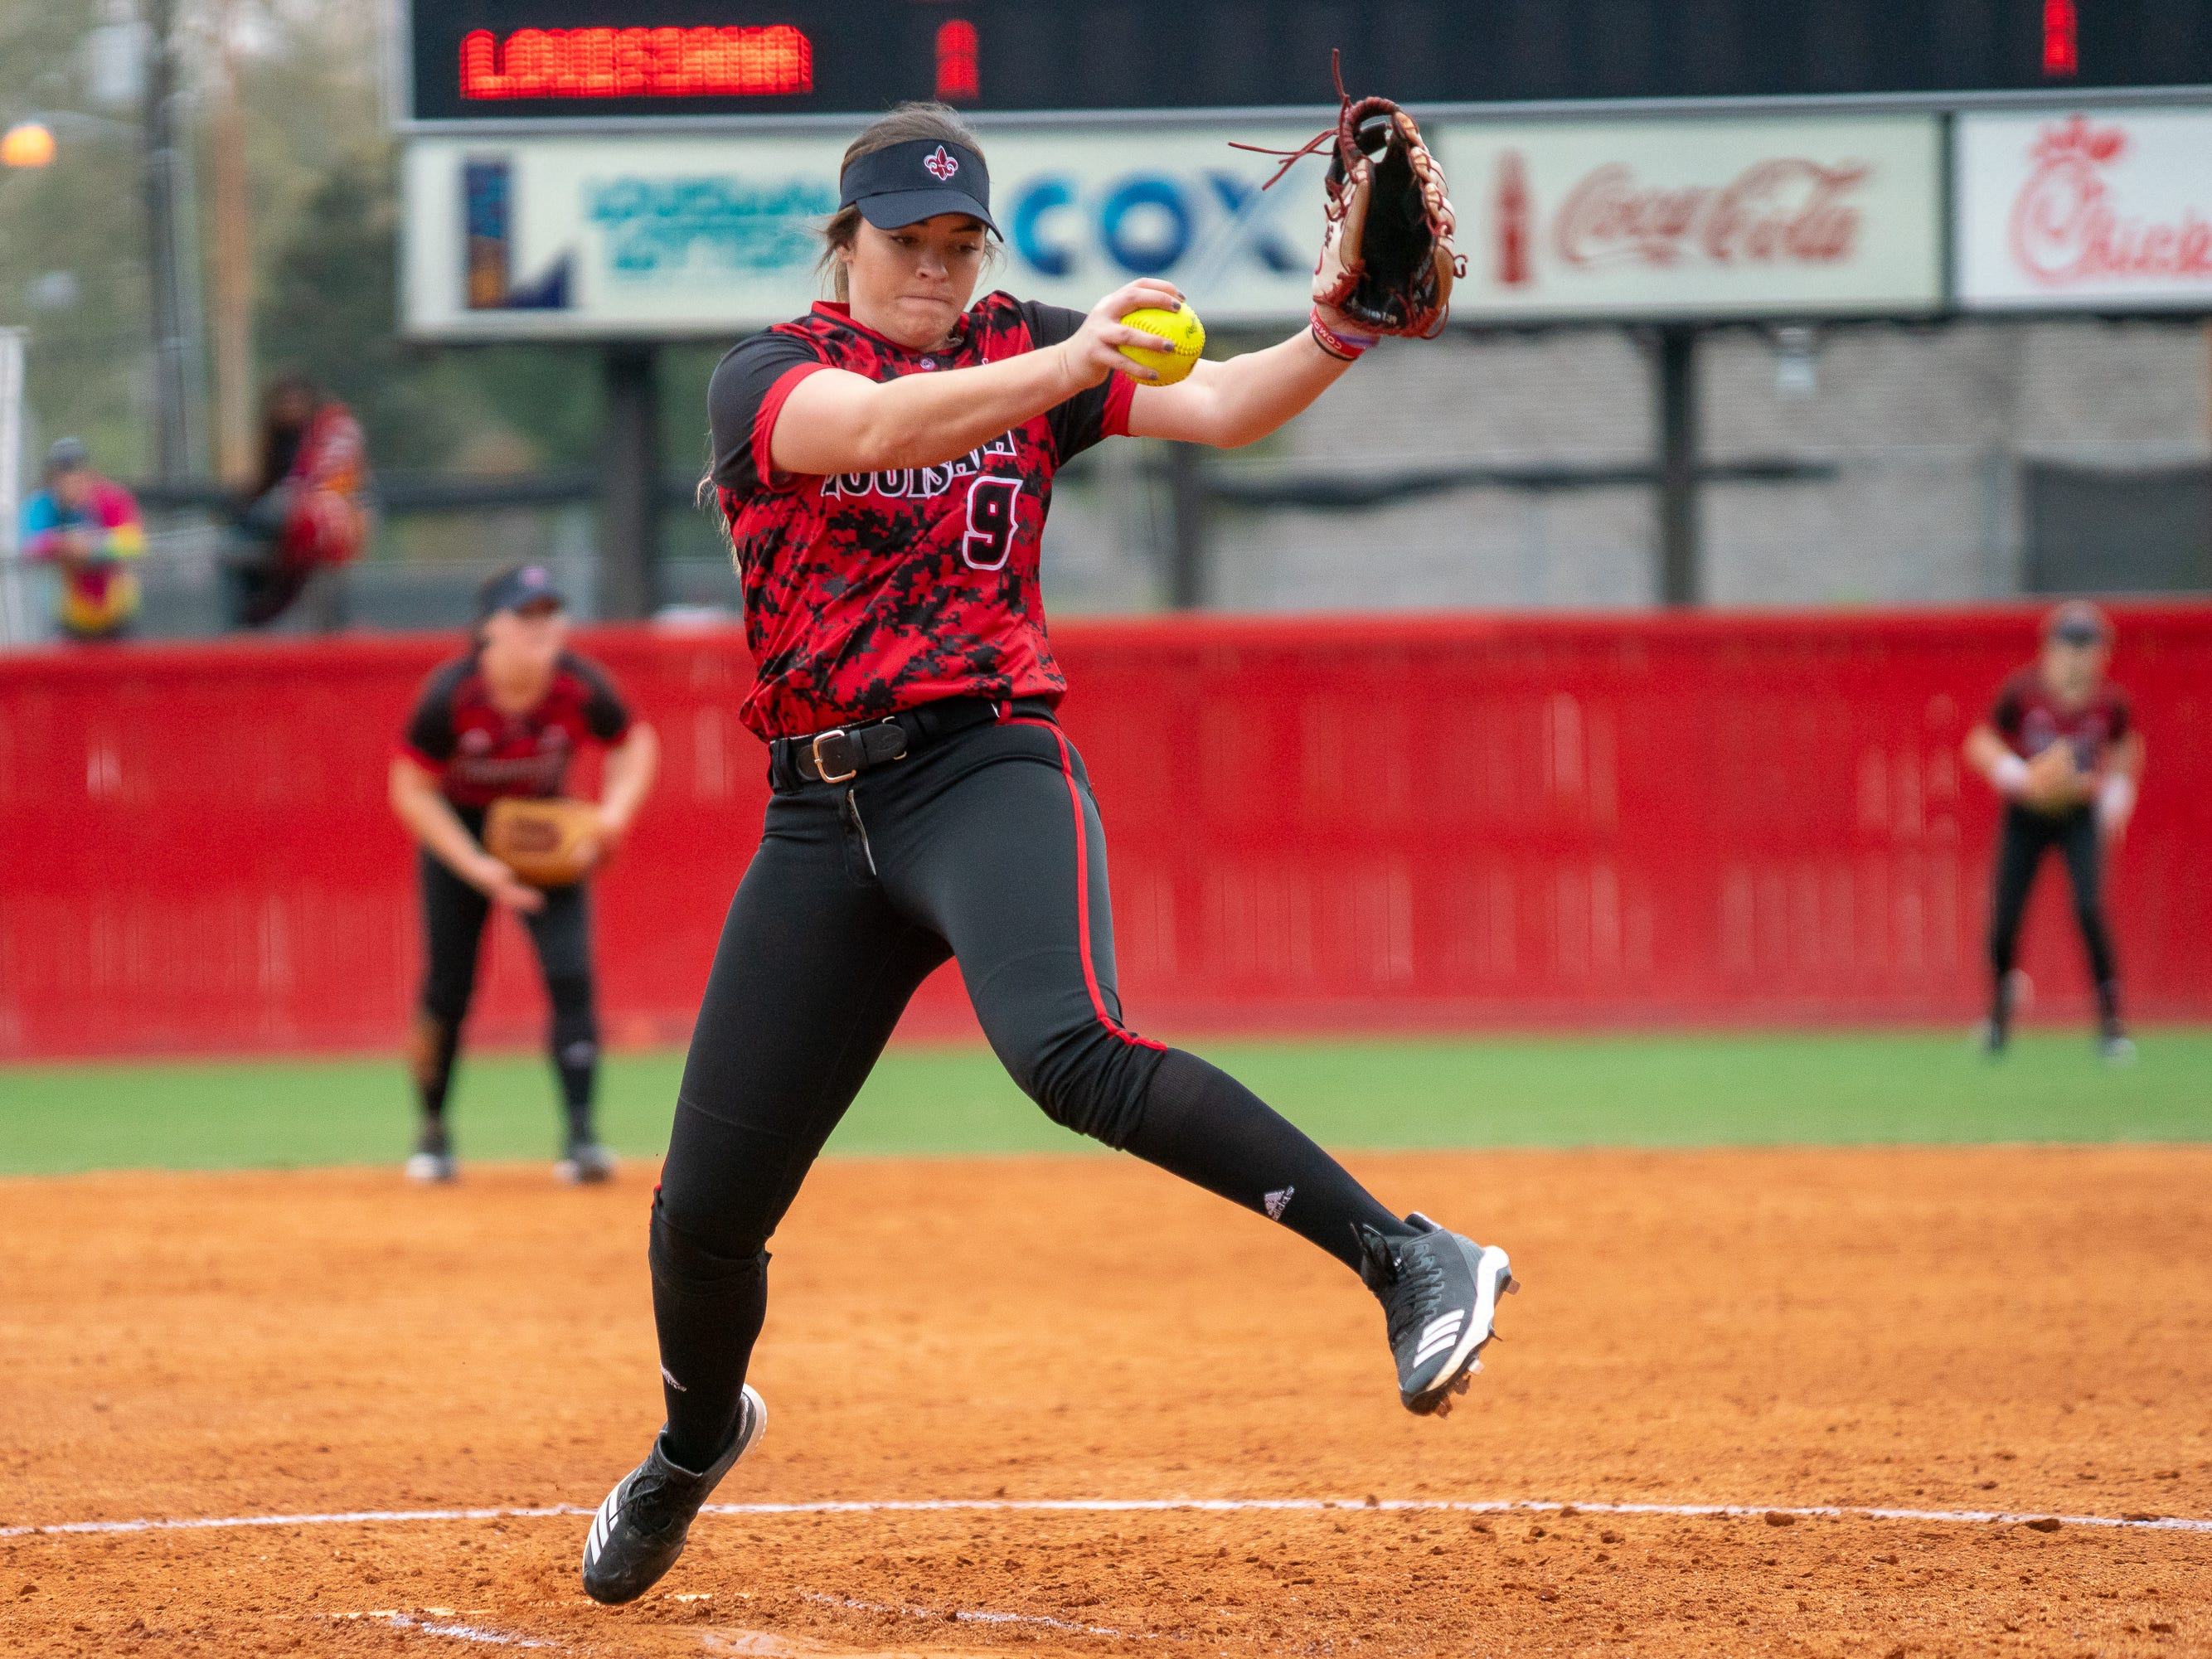 UL's Summer Ellyson pitches the ball as the Ragin' Cajuns take on Stephen F. Austin at Lamson Park on Saturday, Feb. 16, 2019.